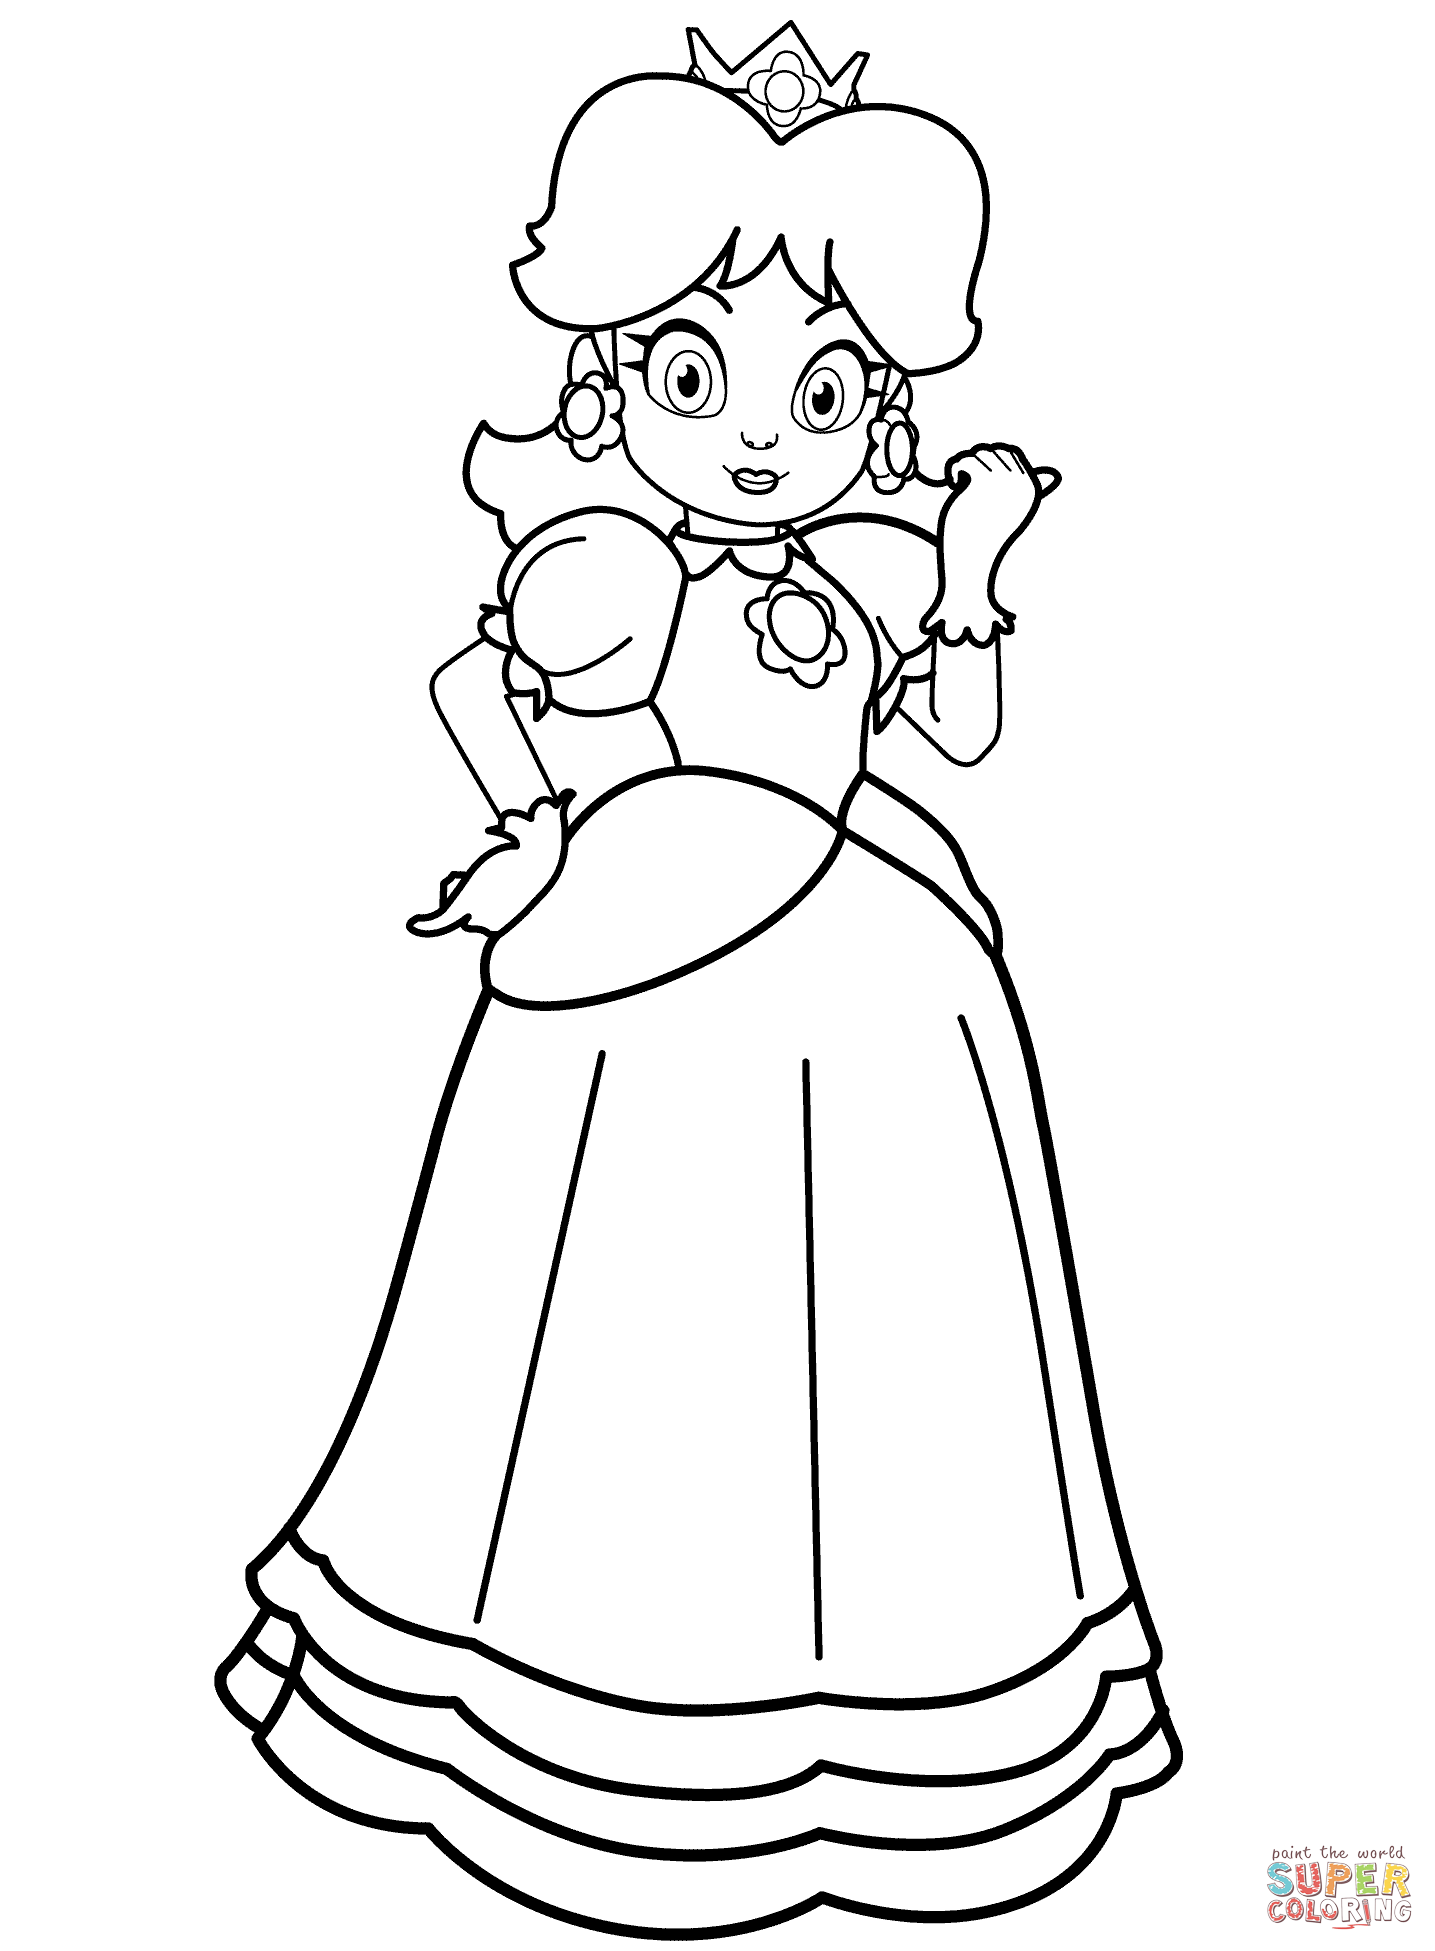 Click the princess daisy coloring pages to view printable version or color it online compatible with ipad and android tablets